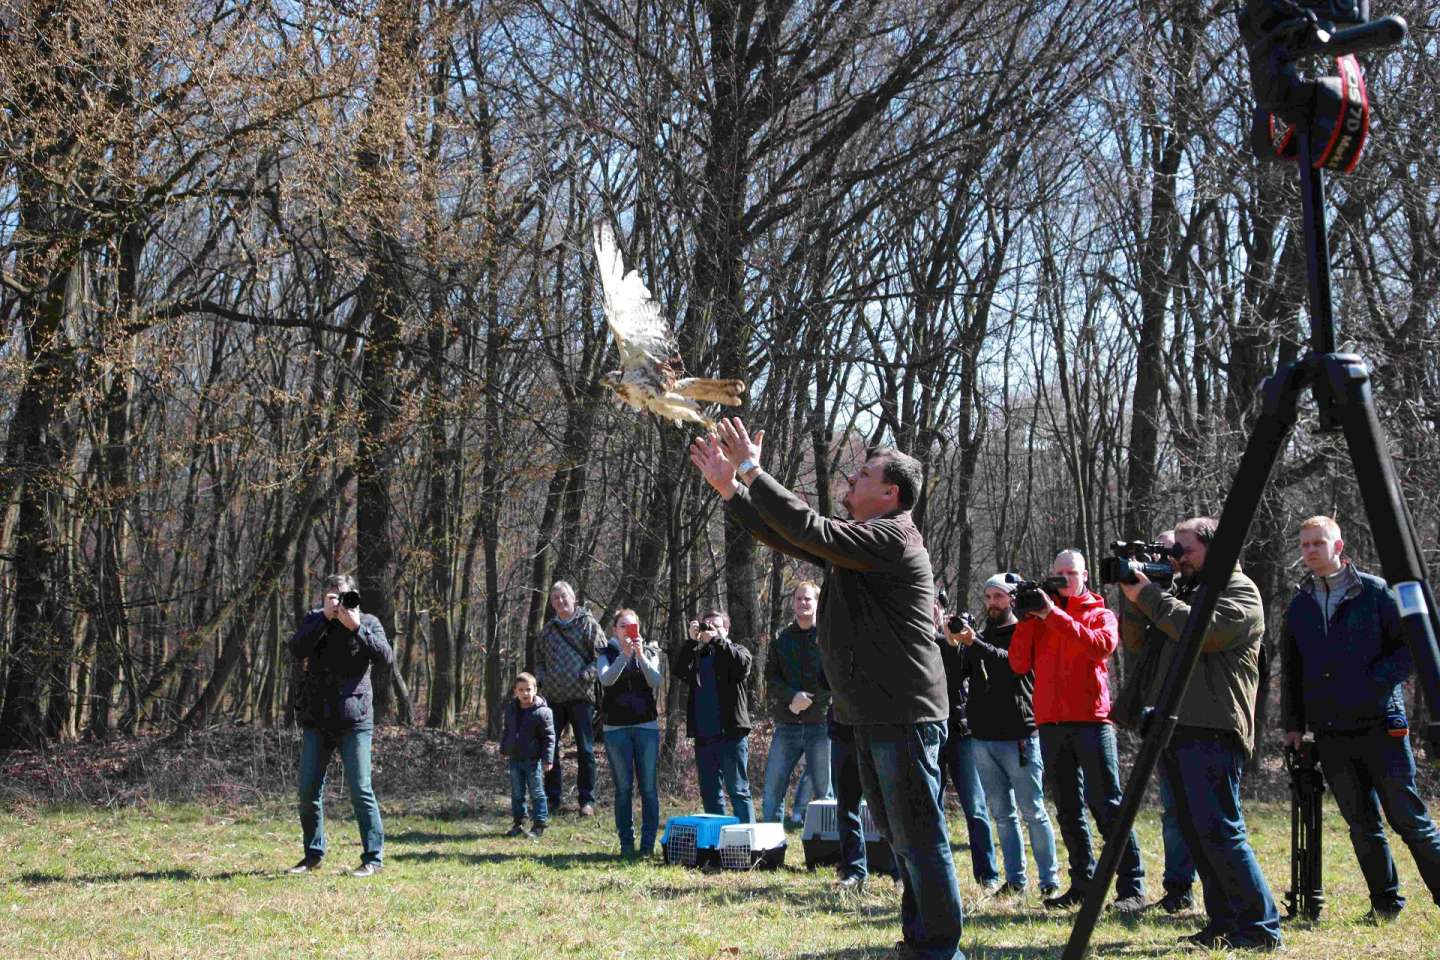 The release of the three birds of prey in nature